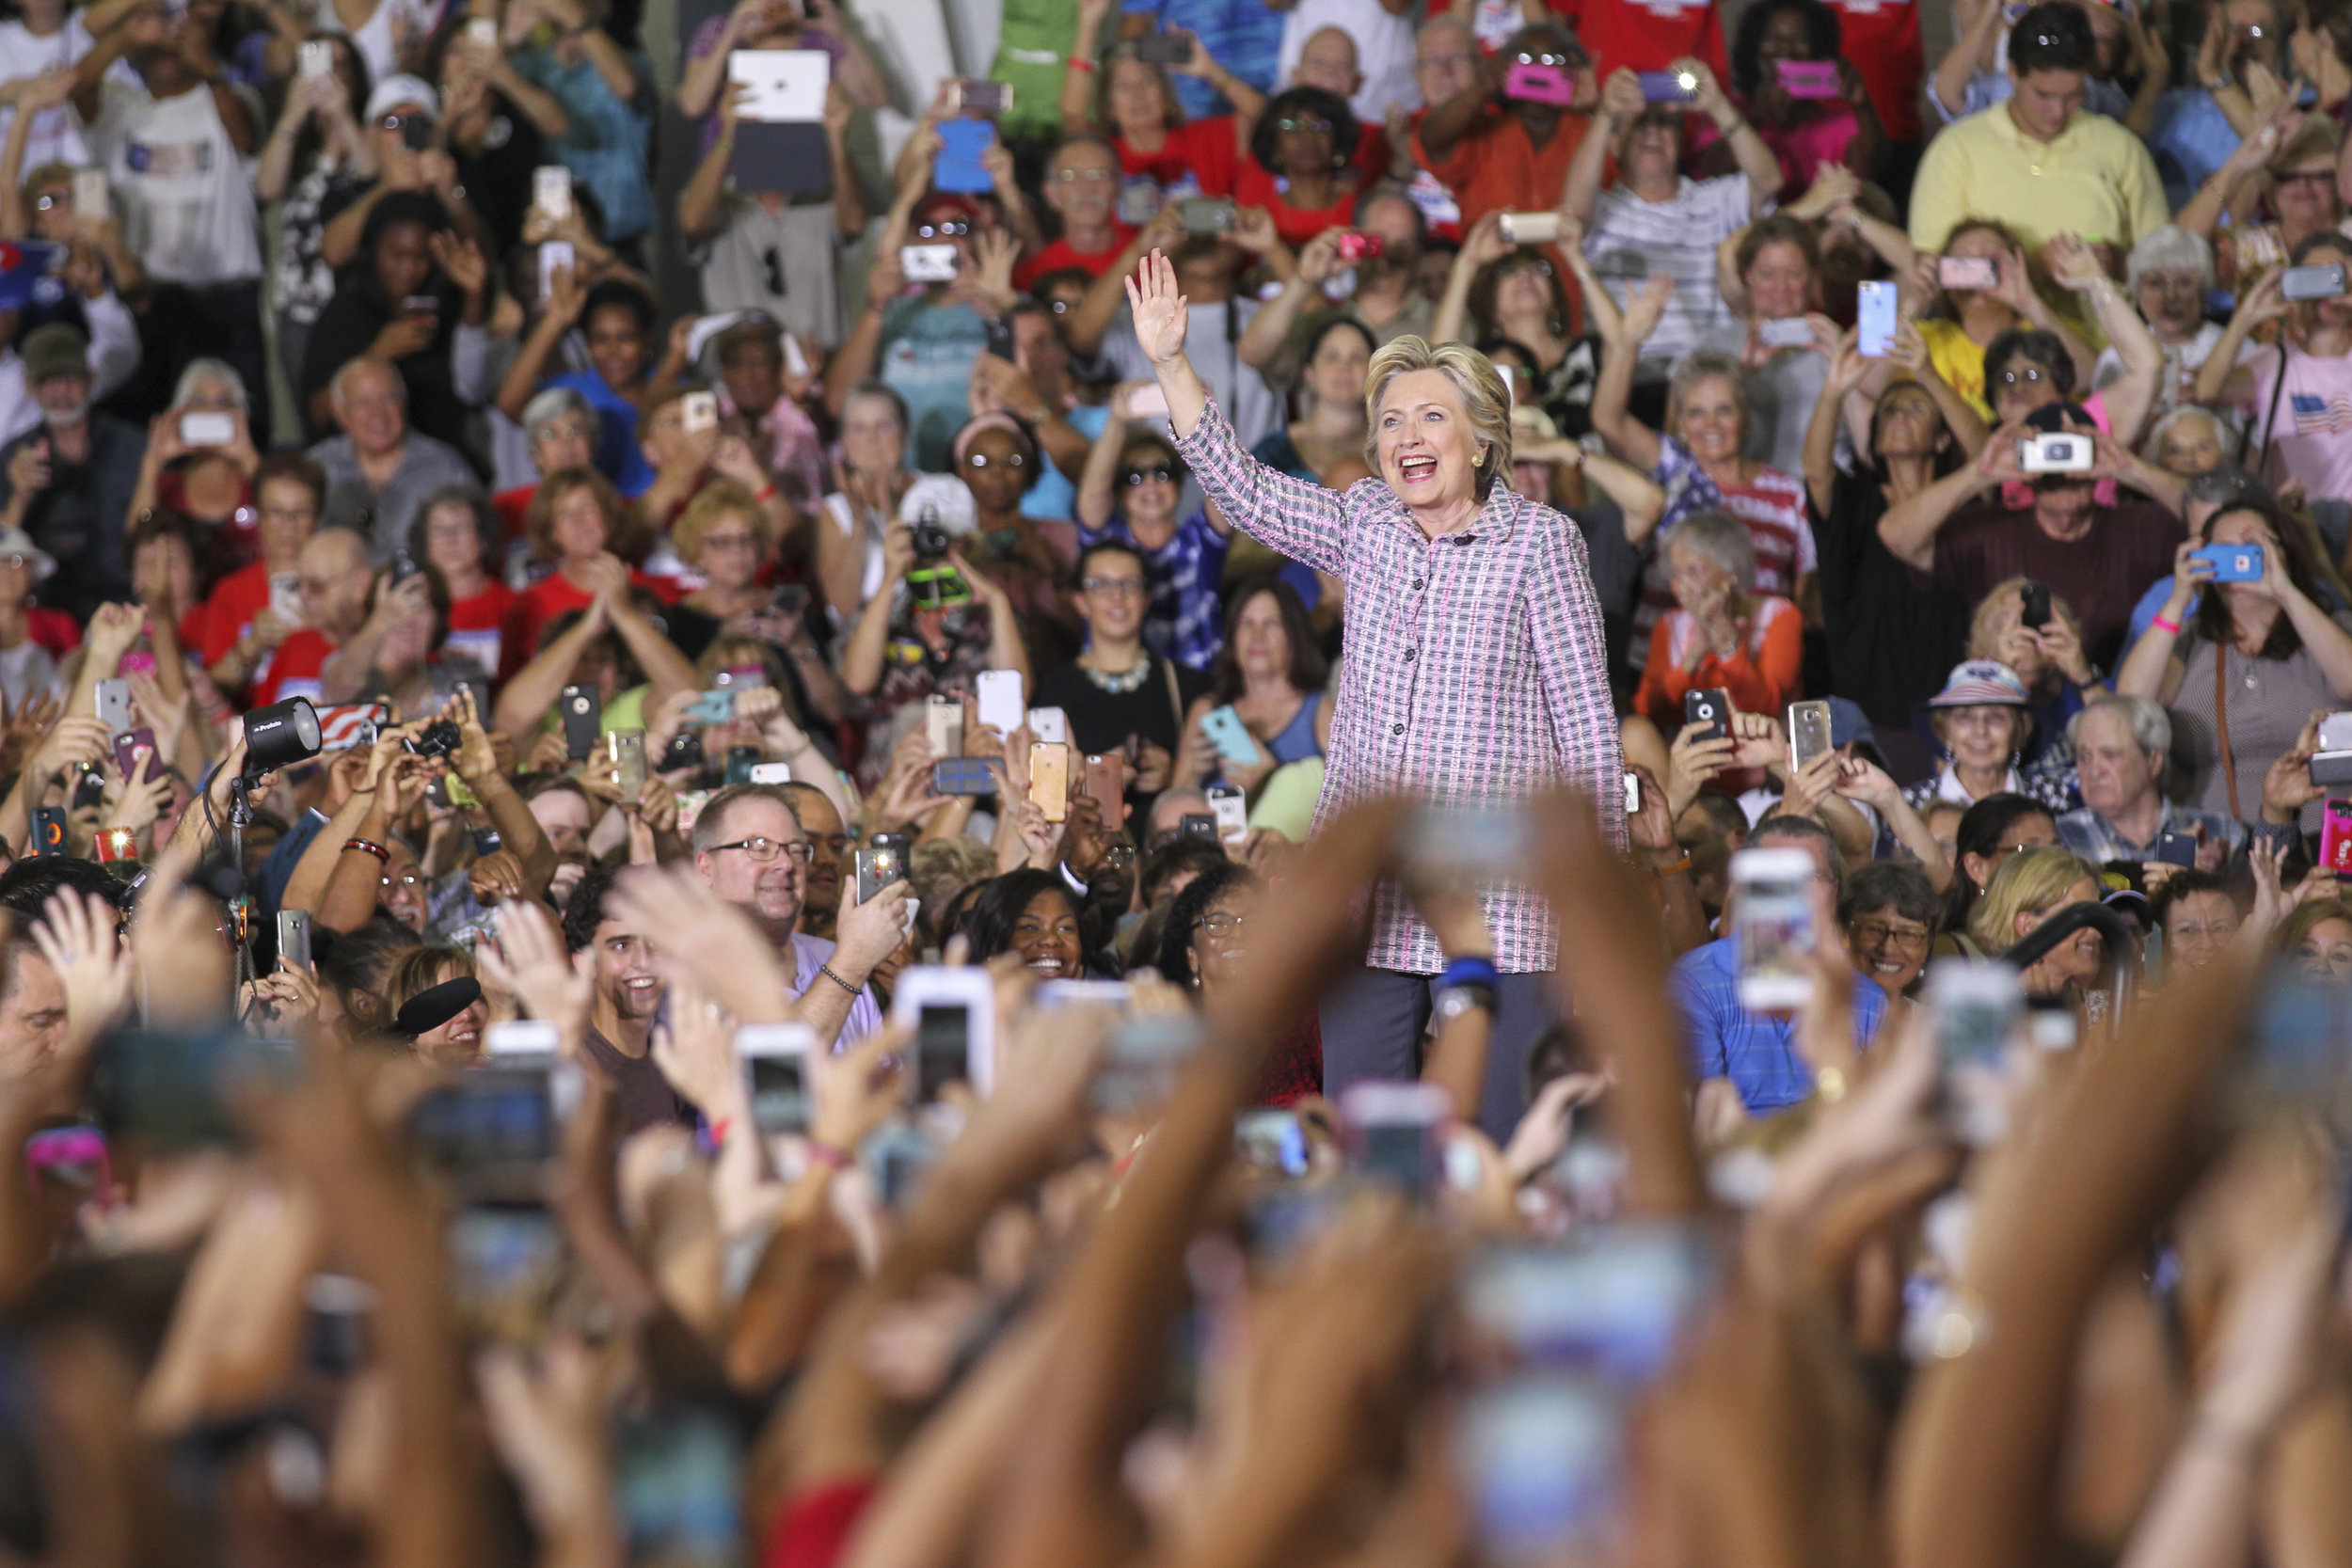 Hillary Clinton waves to supporters after arriving to her political rally at a Coral Springs gymnasium on Friday, September 30, 2016.